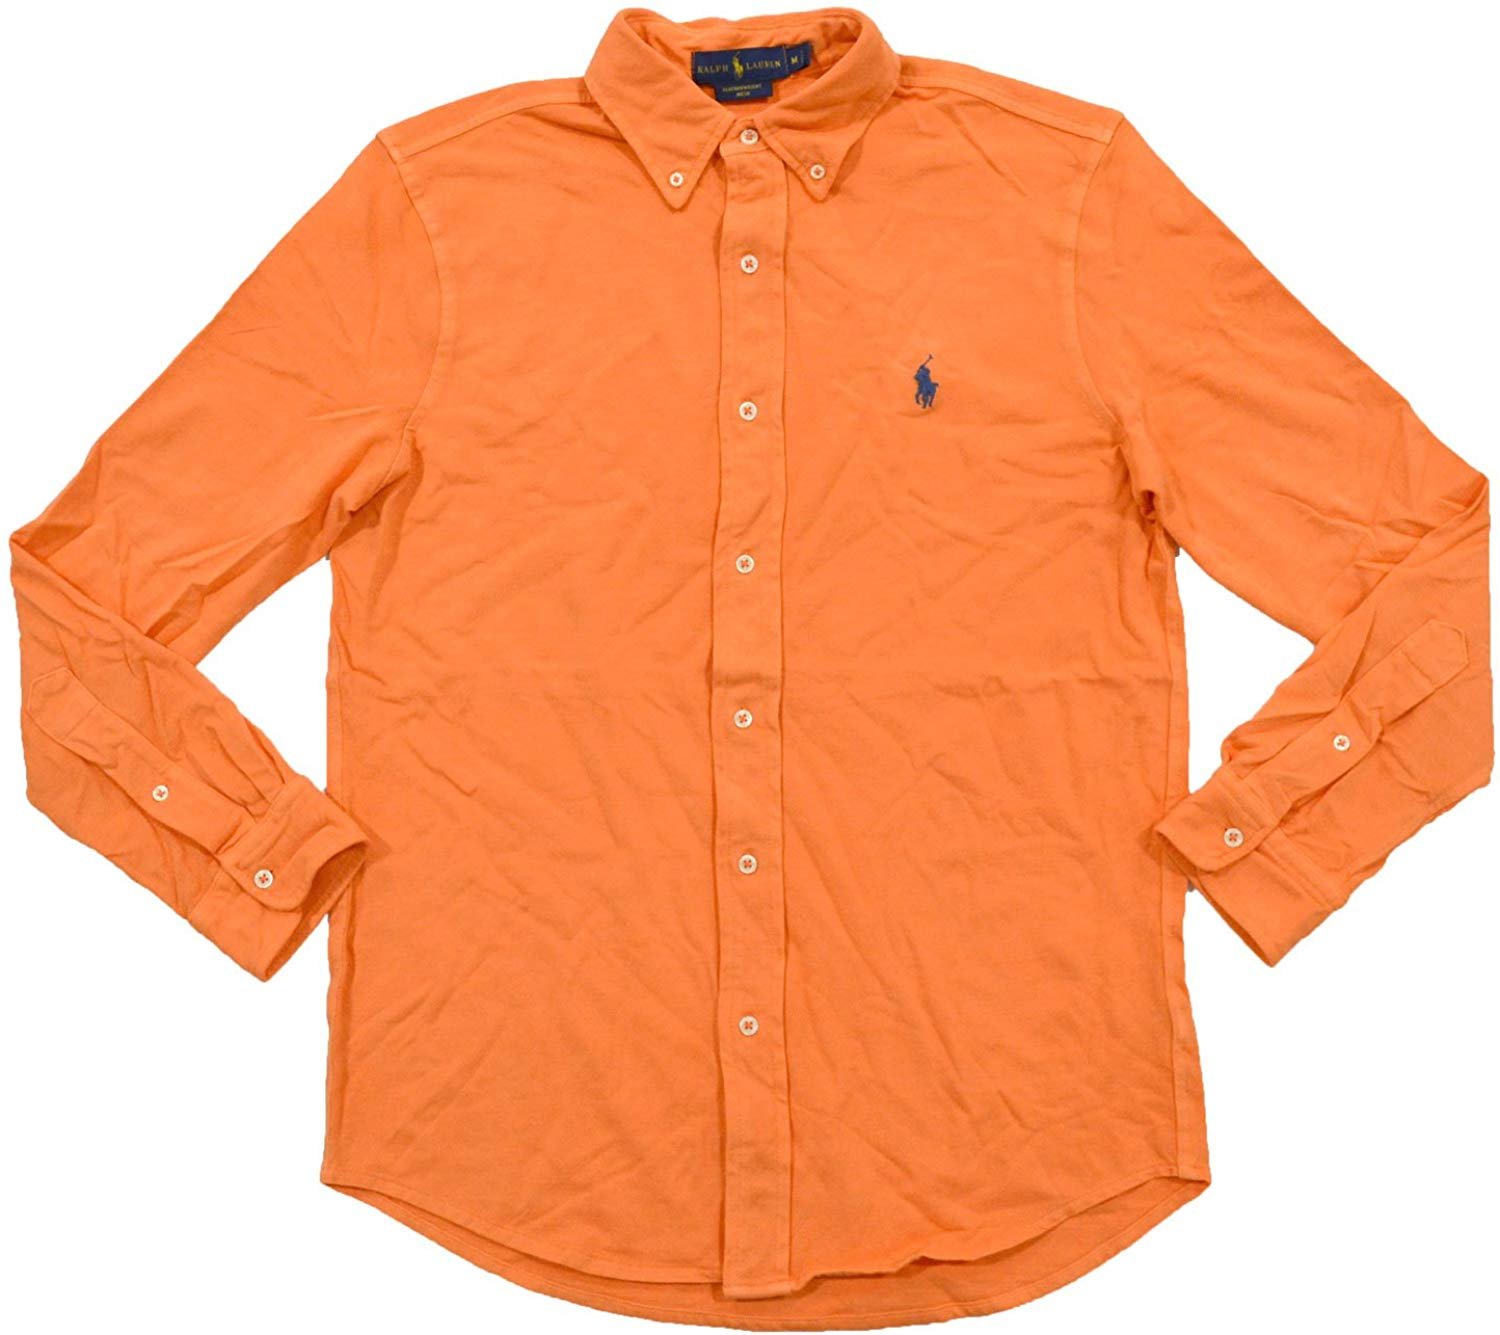 Polo Ralph Lauren Mens Featherweight Mesh Buttondown Shirt (M, May Orange) at Amazon Men's Clothing store